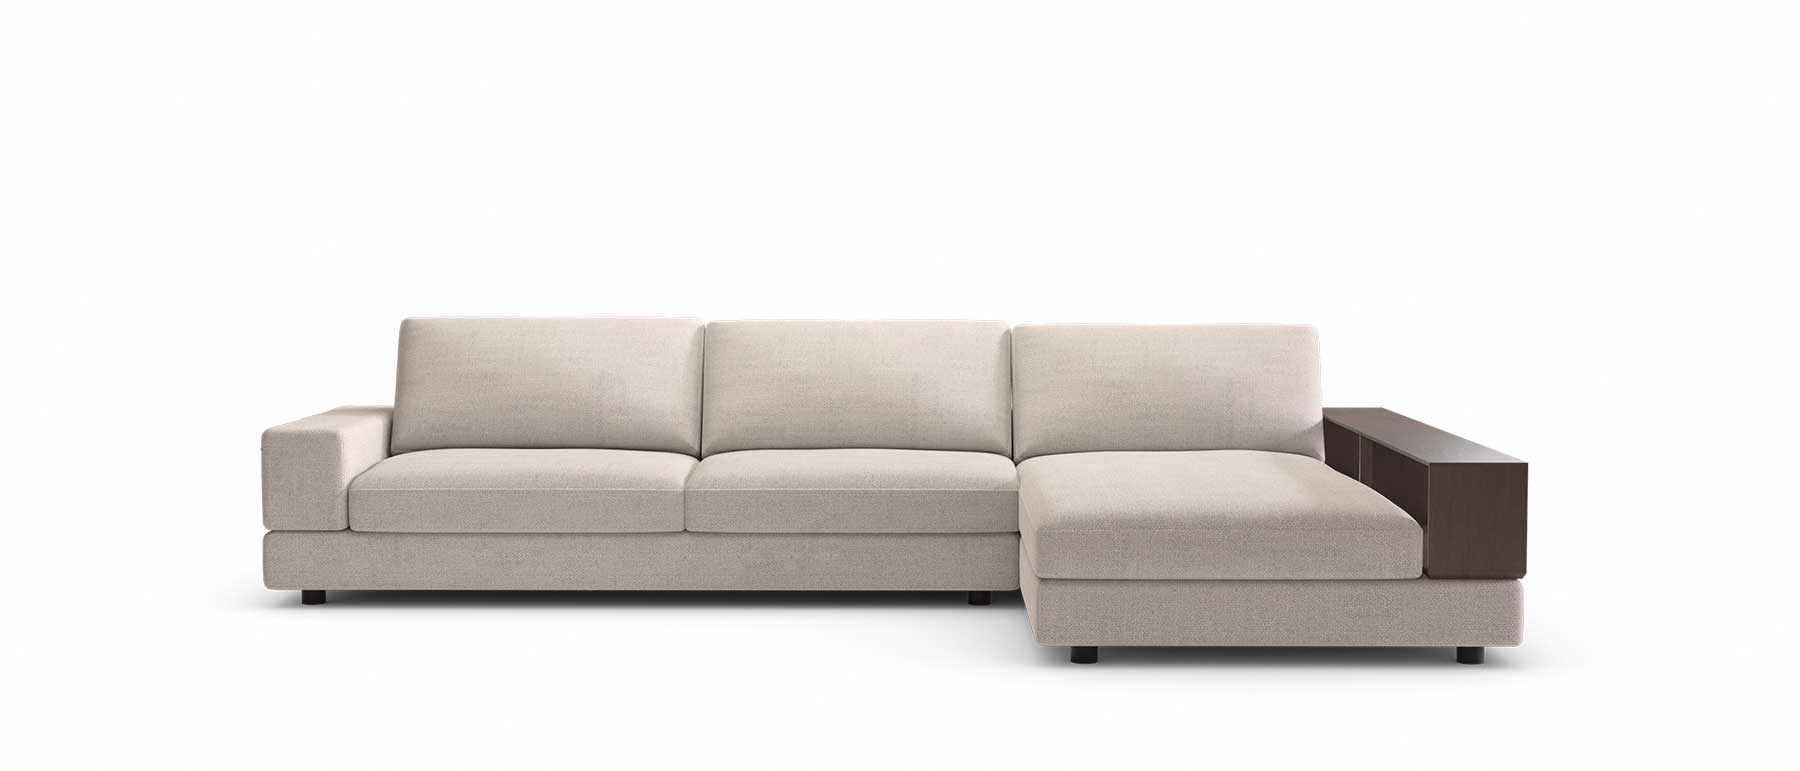 Jasper Modular Sofa Award Winning Design Modular Lounge